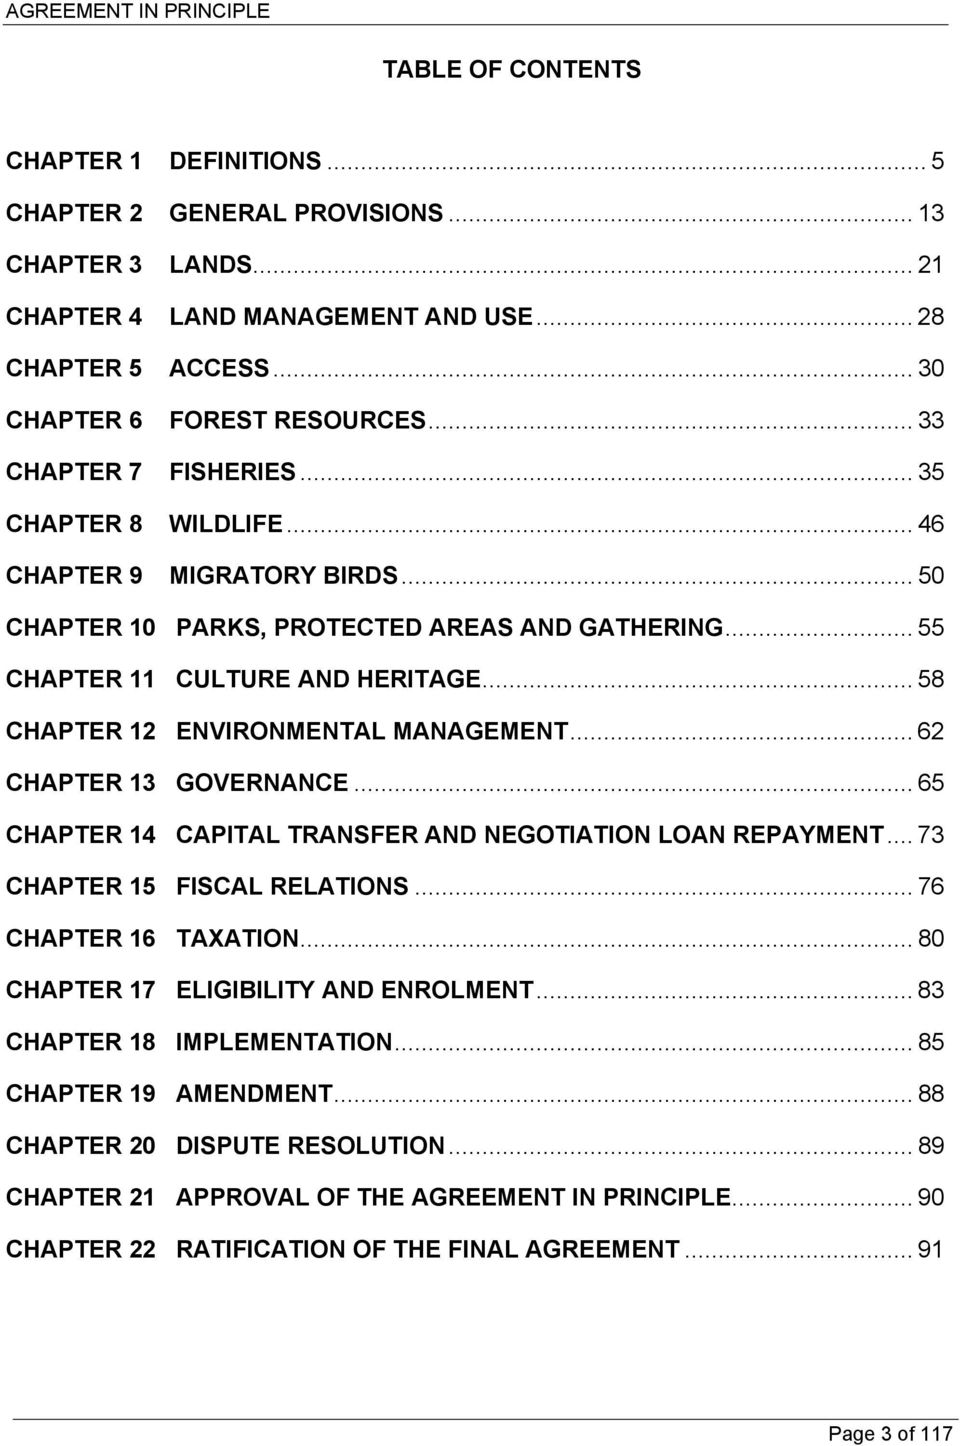 .. 58 CHAPTER 12 ENVIRONMENTAL MANAGEMENT... 62 CHAPTER 13 GOVERNANCE... 65 CHAPTER 14 CAPITAL TRANSFER AND NEGOTIATION LOAN REPAYMENT... 73 CHAPTER 15 FISCAL RELATIONS... 76 CHAPTER 16 TAXATION.